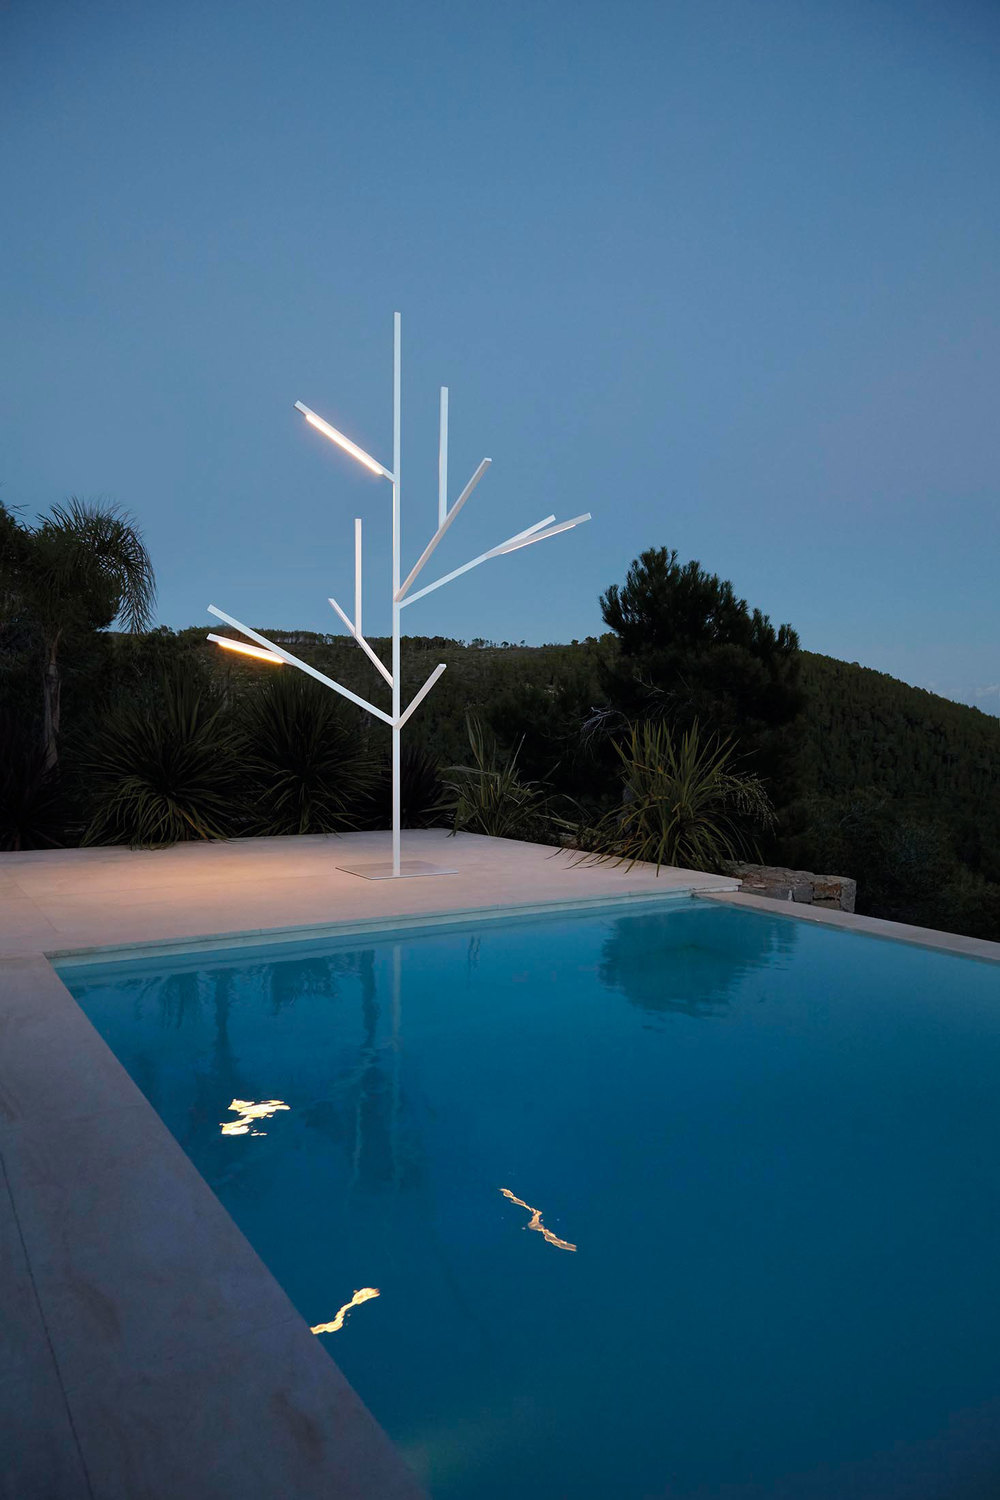 The Blau Tree lamp lit up at night. (Photo: Courtesy Gandia Blasco)